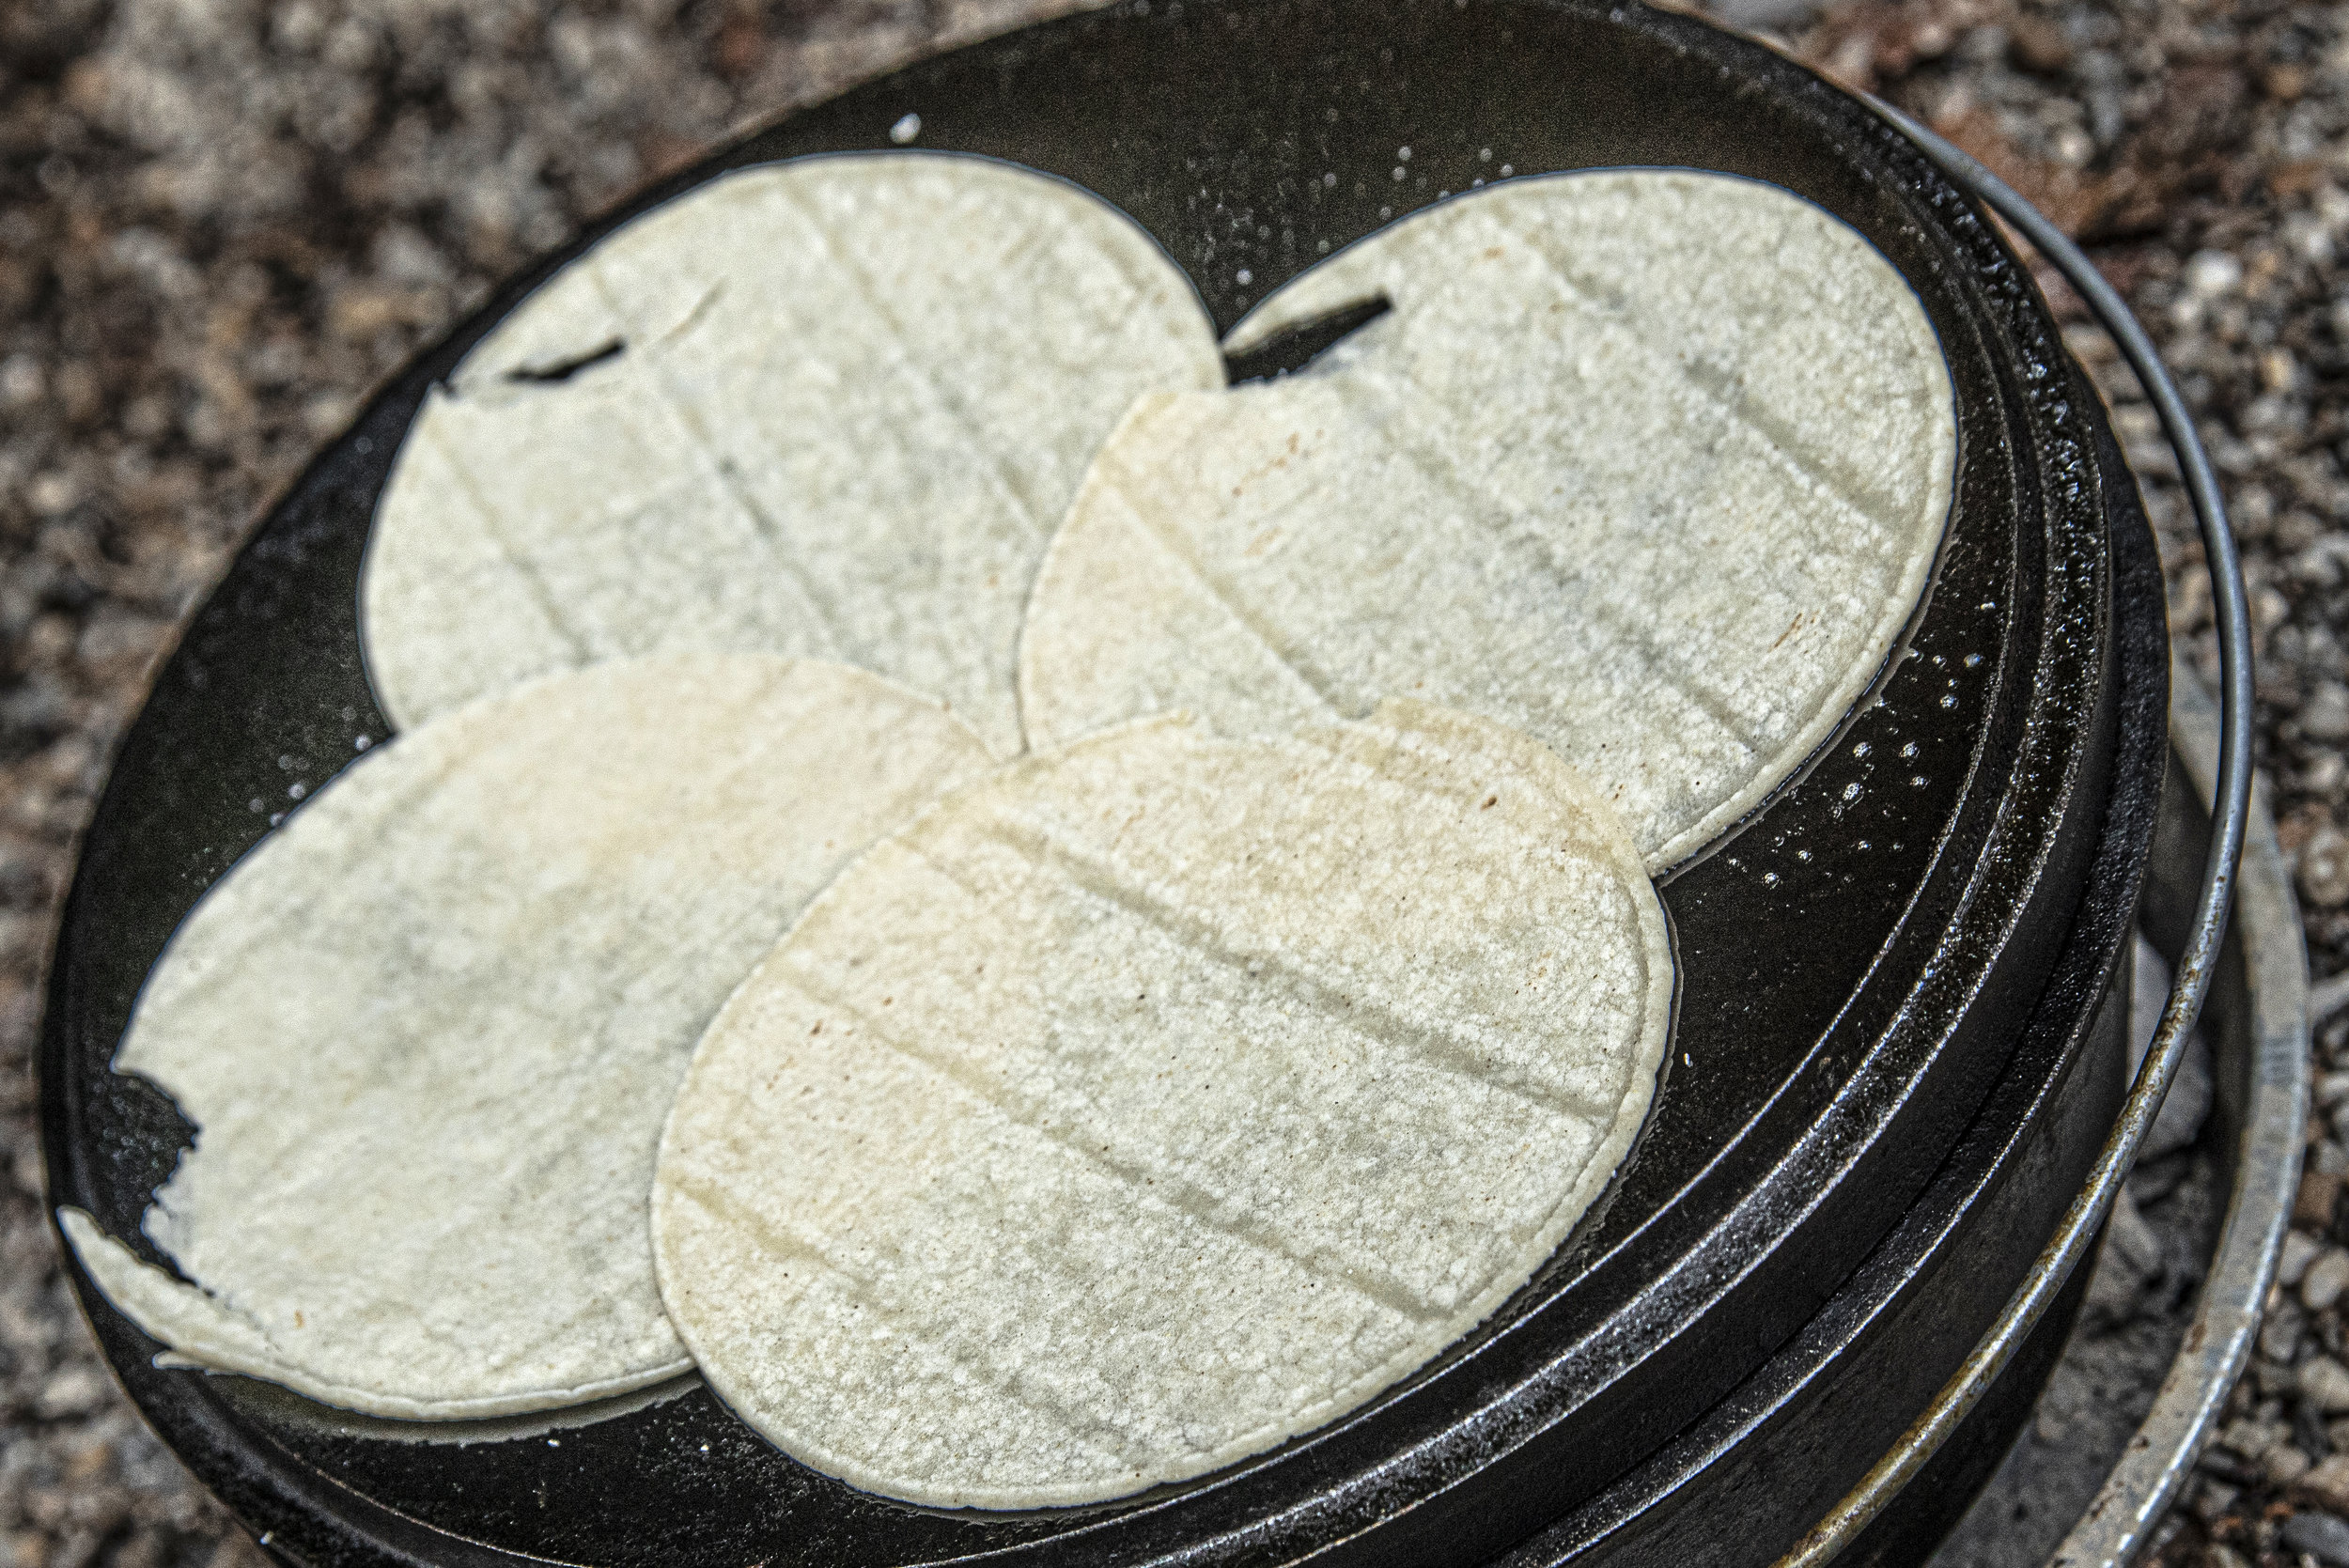 Warm your tortillas on the Dutch oven lid.